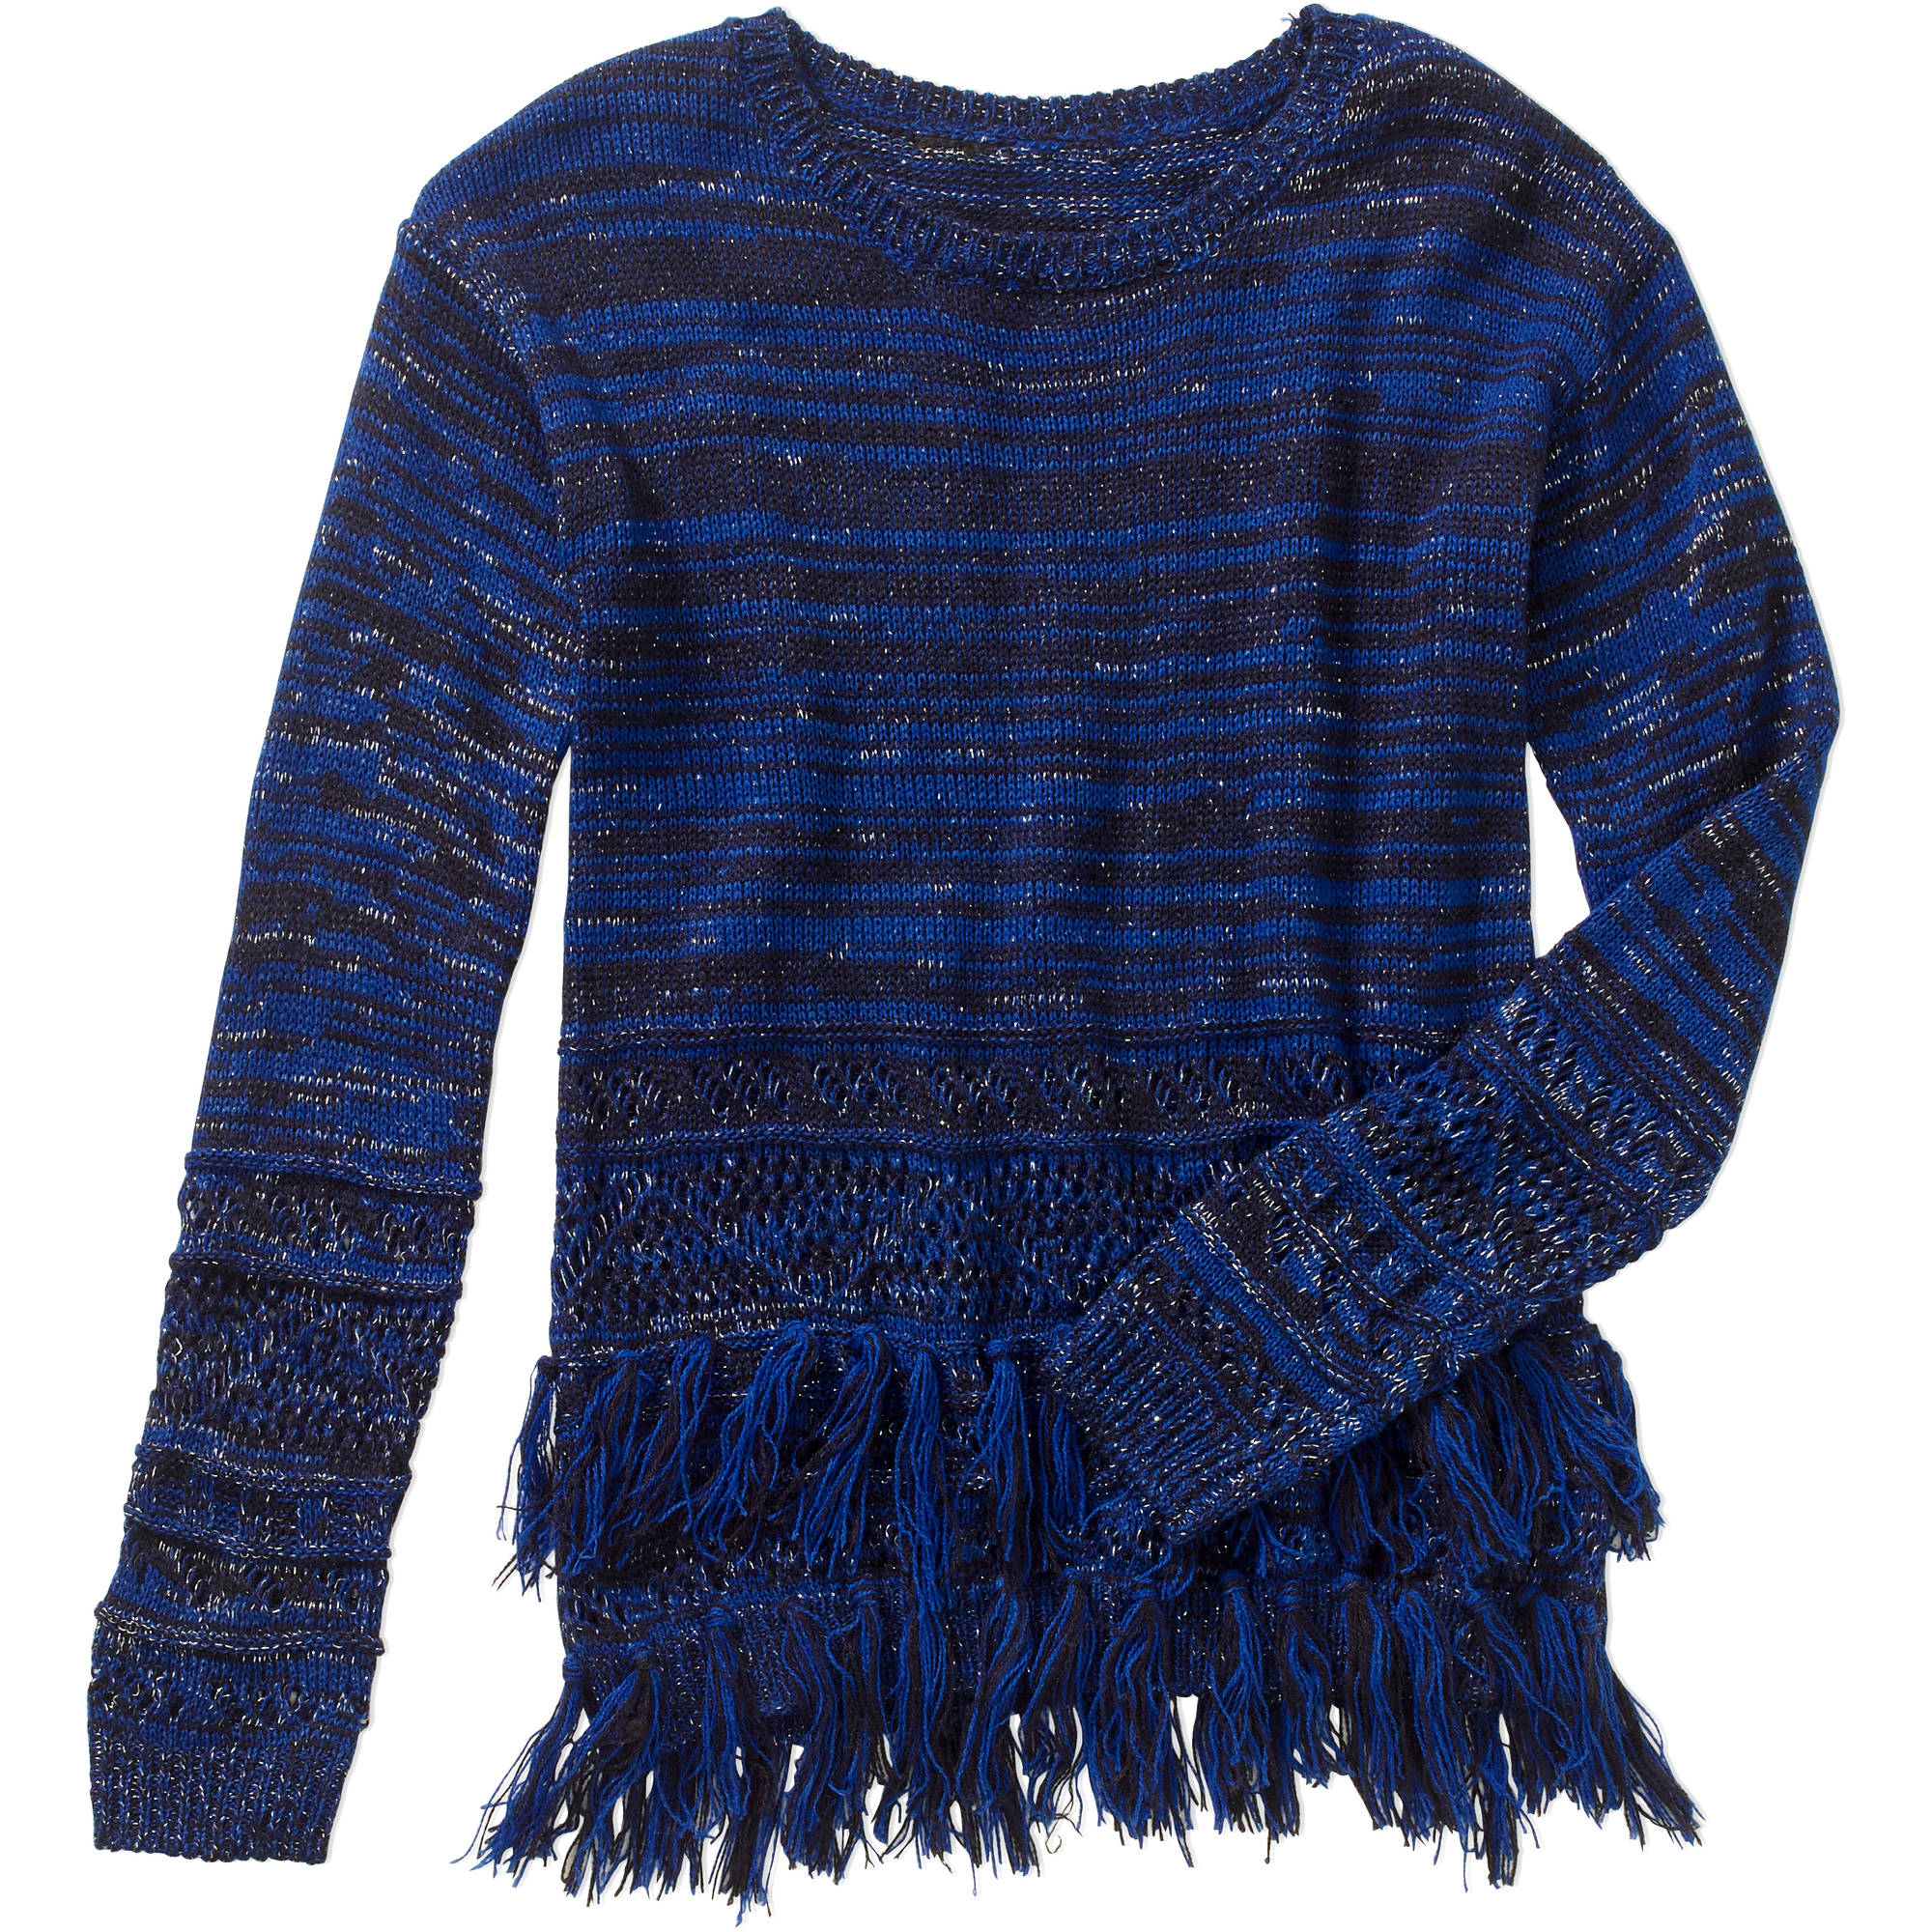 Derek Heart Girls Marled Tunic with Lurex and Fringe